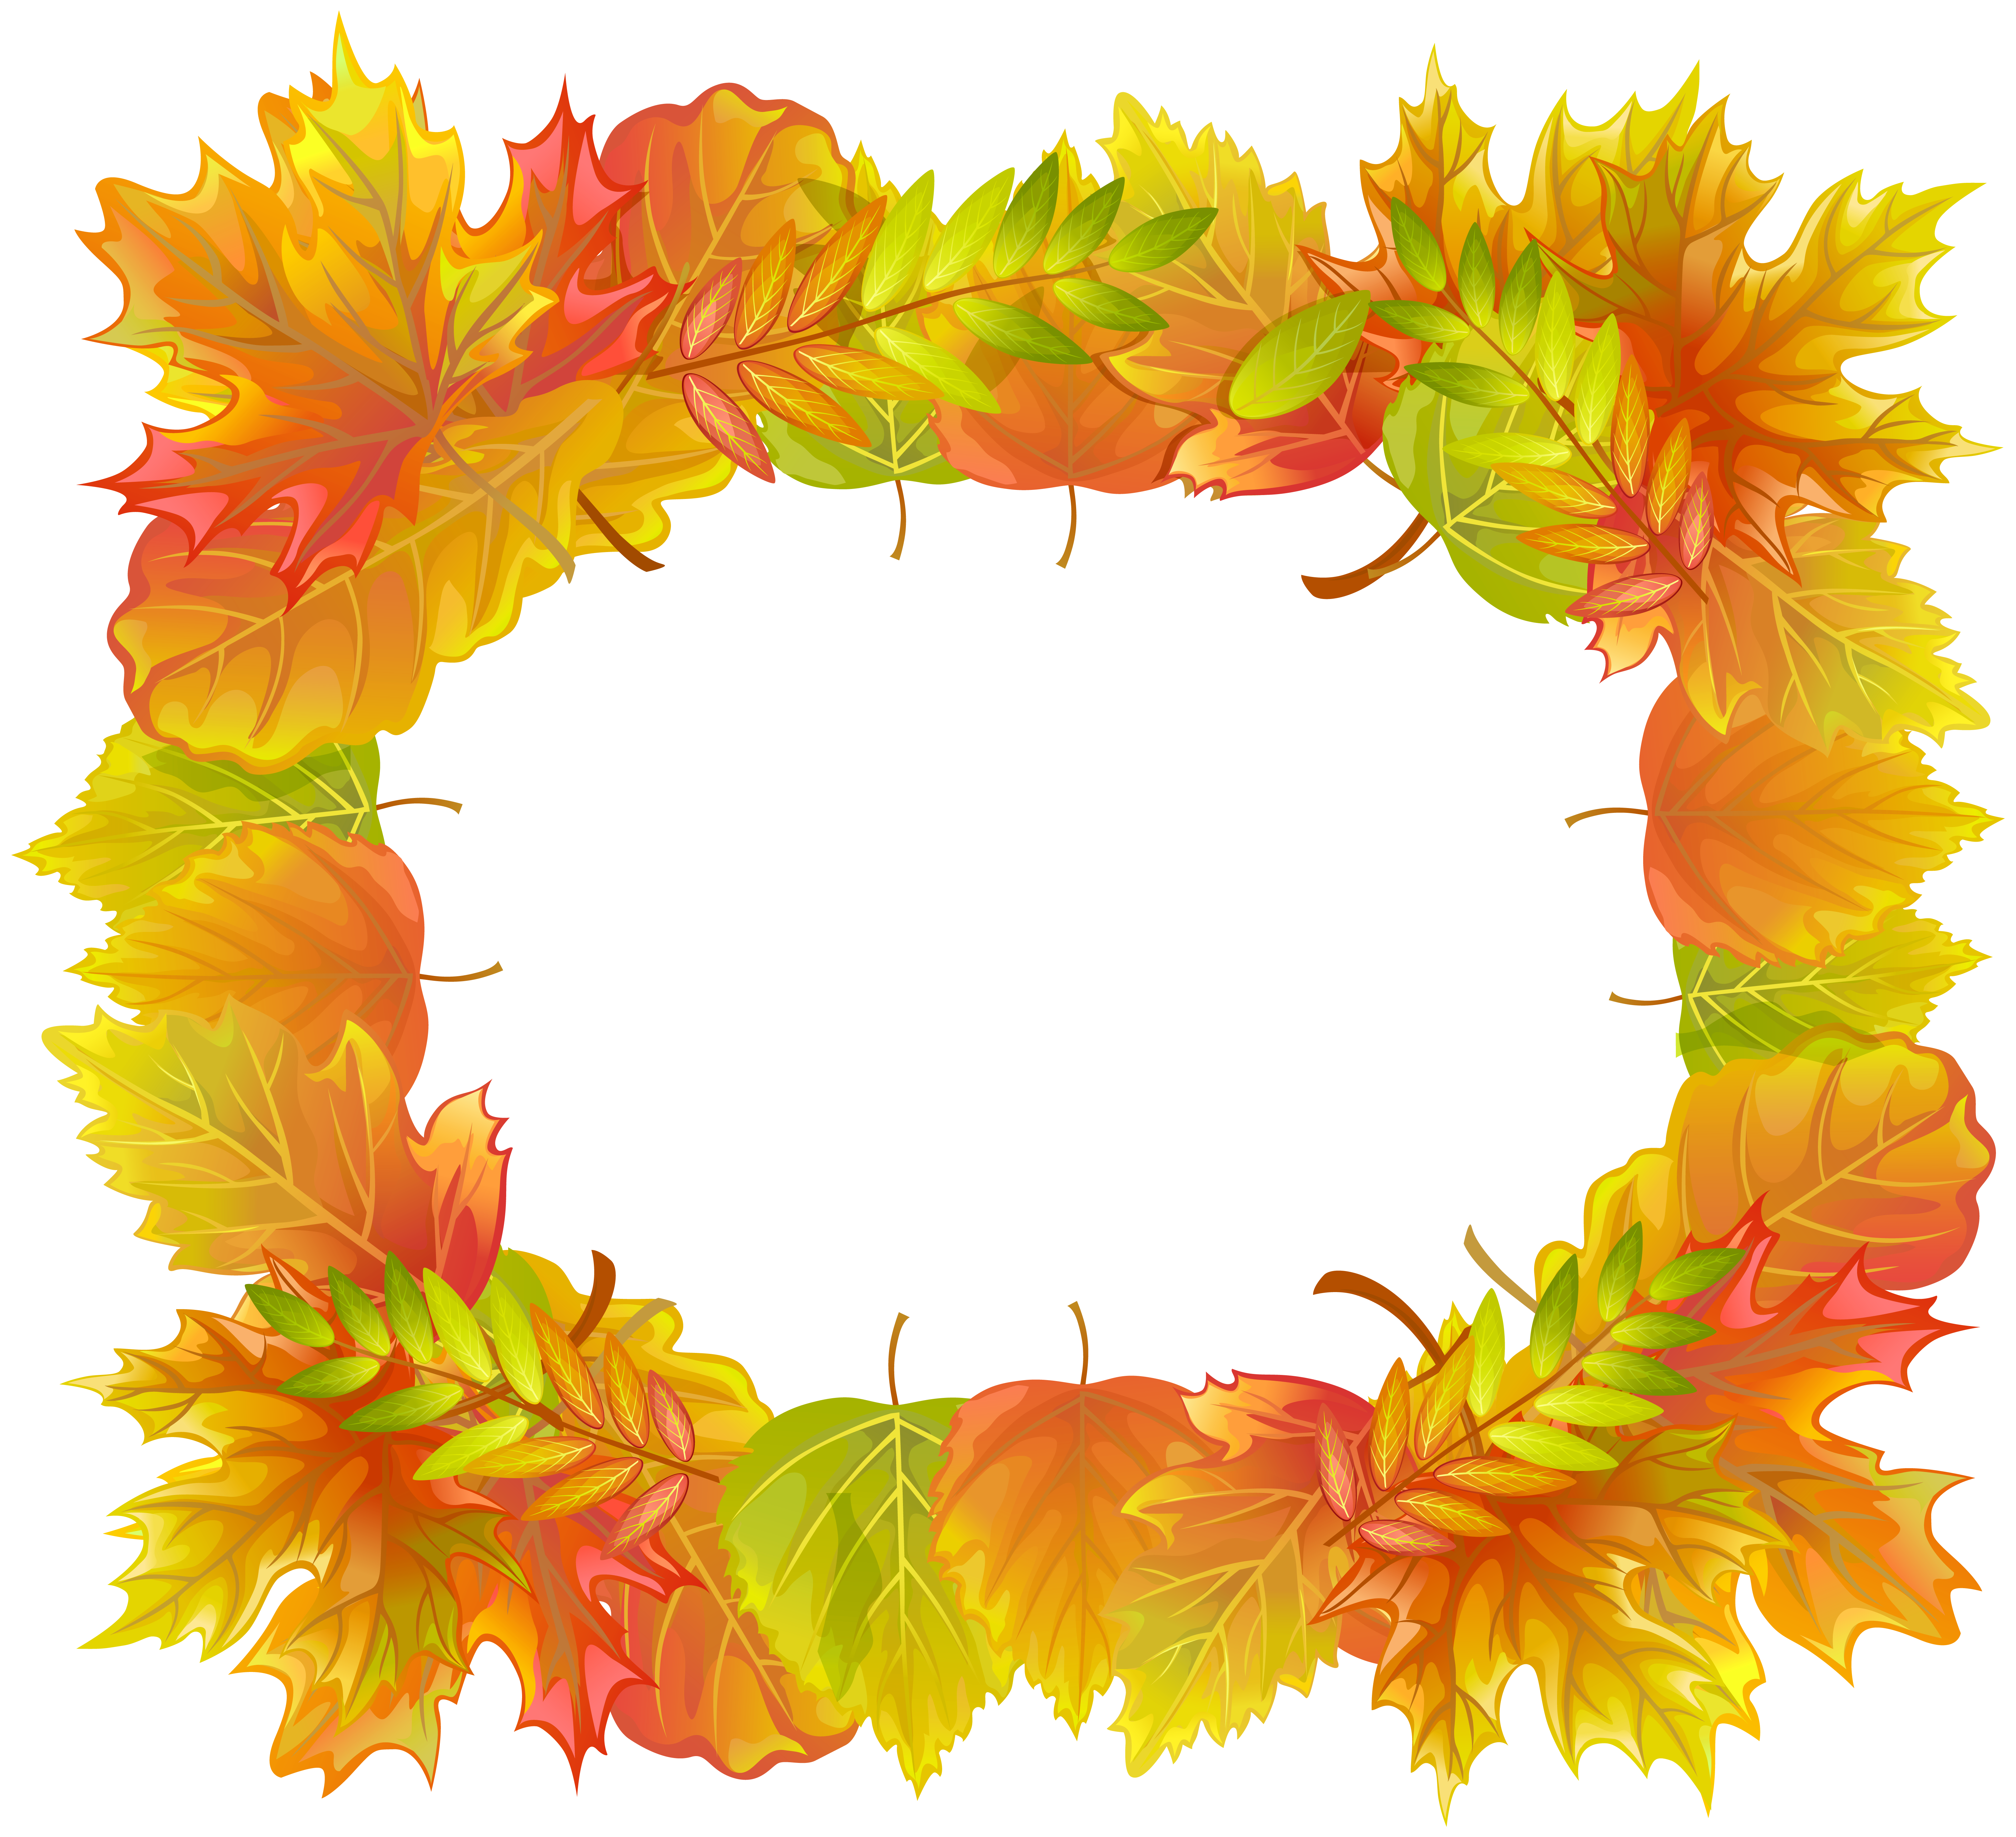 Fall frame png. Autumn leafs border clipart